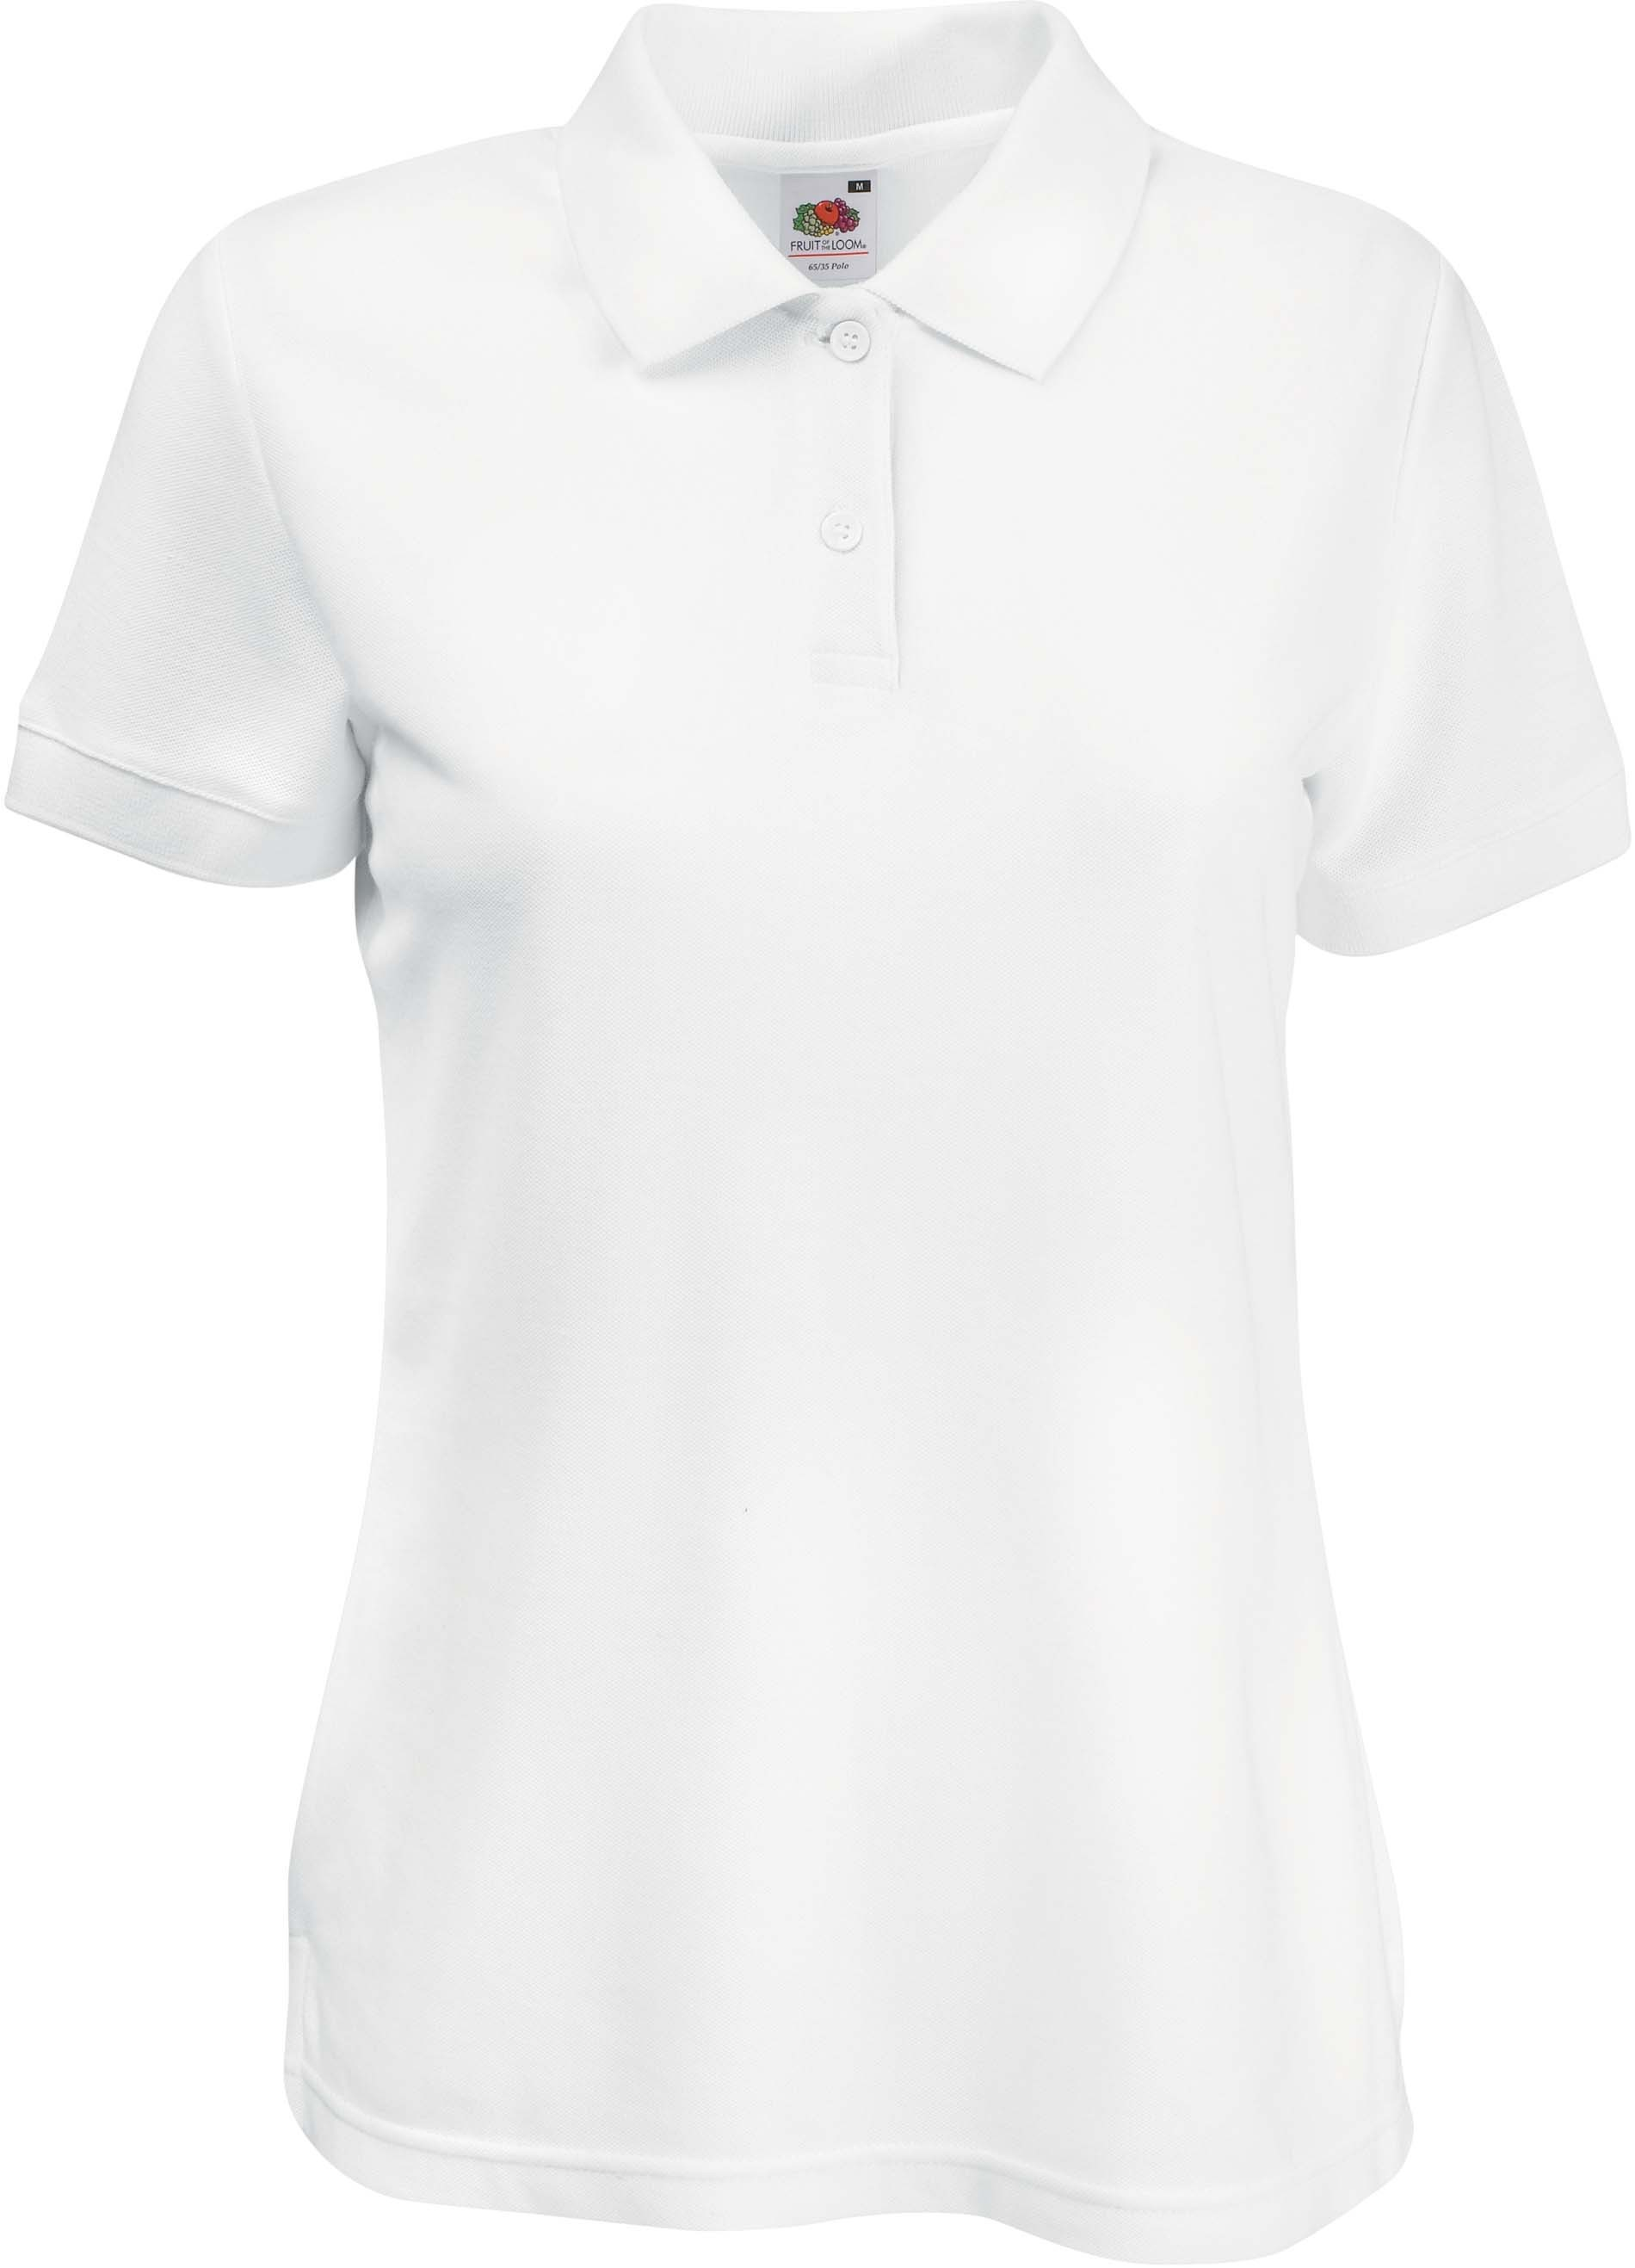 Slim fit dames polo